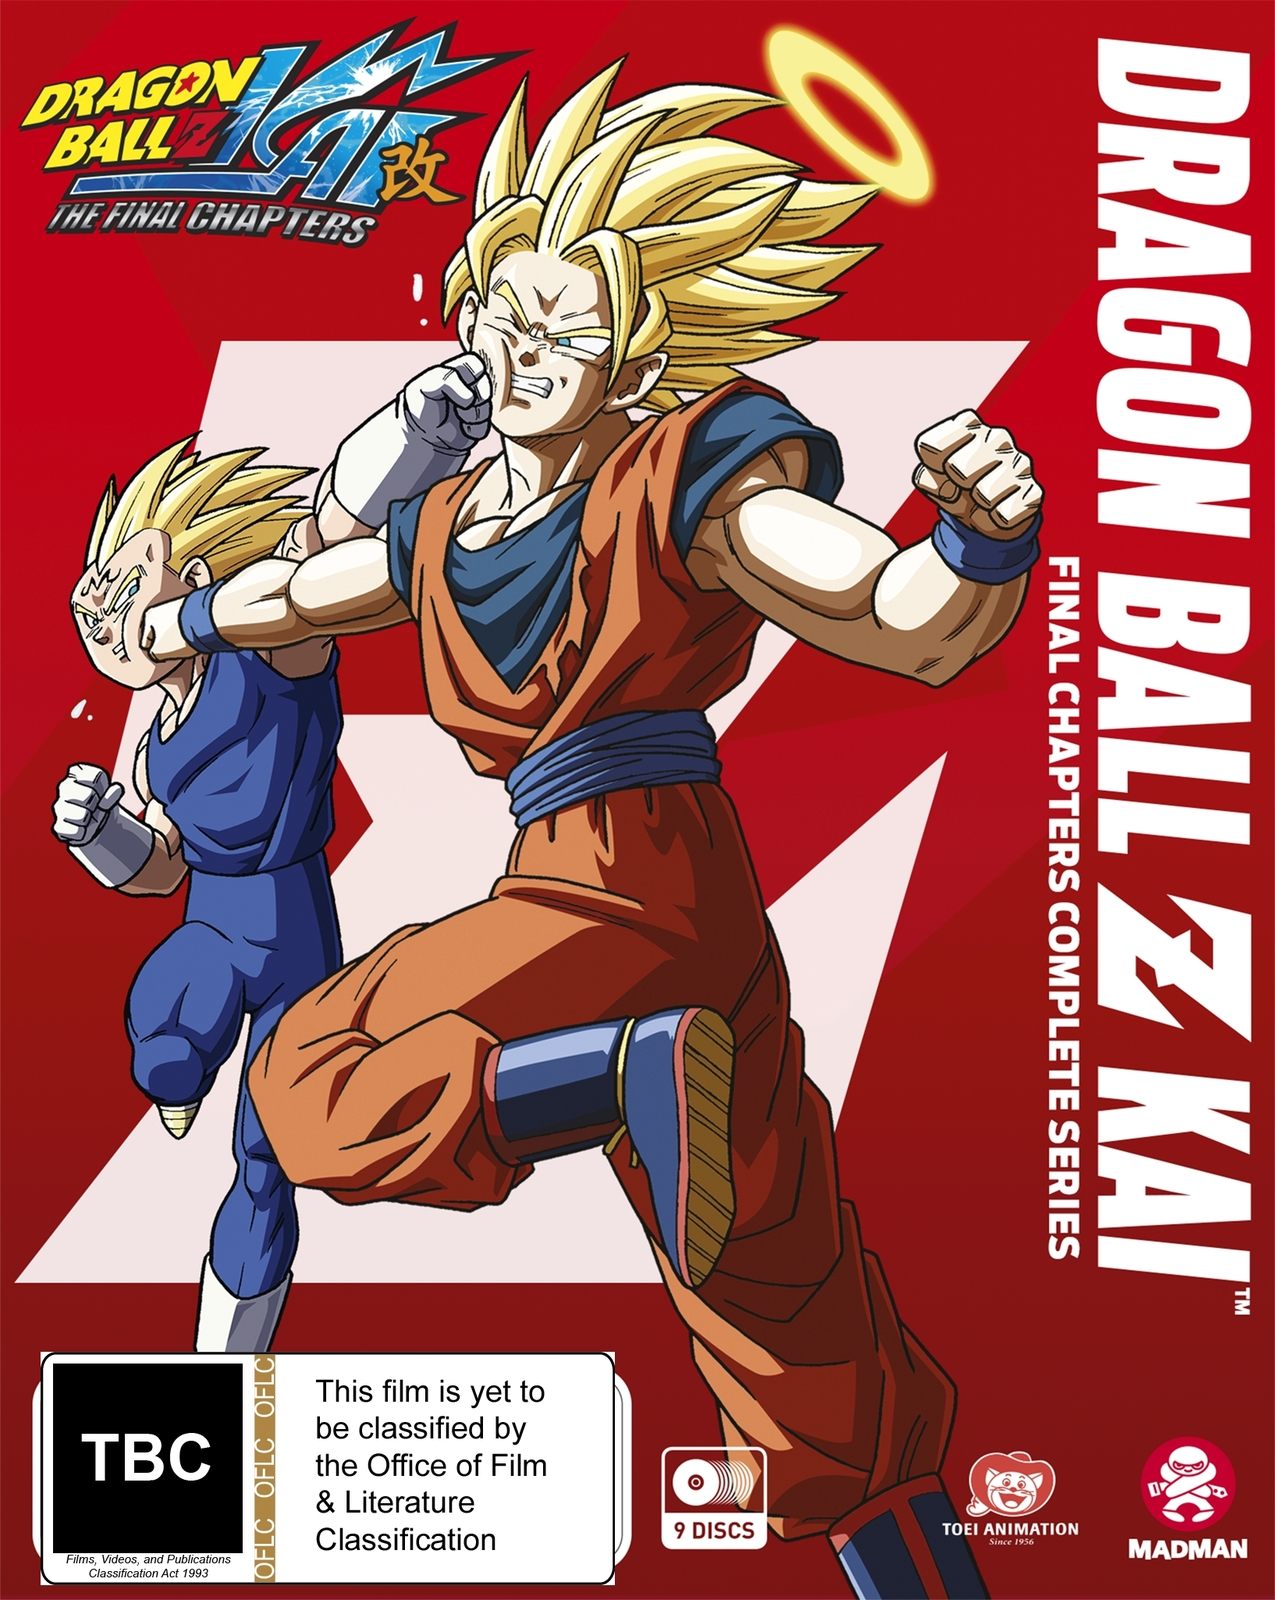 Dragon Ball Z Kai: The Final Chapters - Complete Series on Blu-ray image